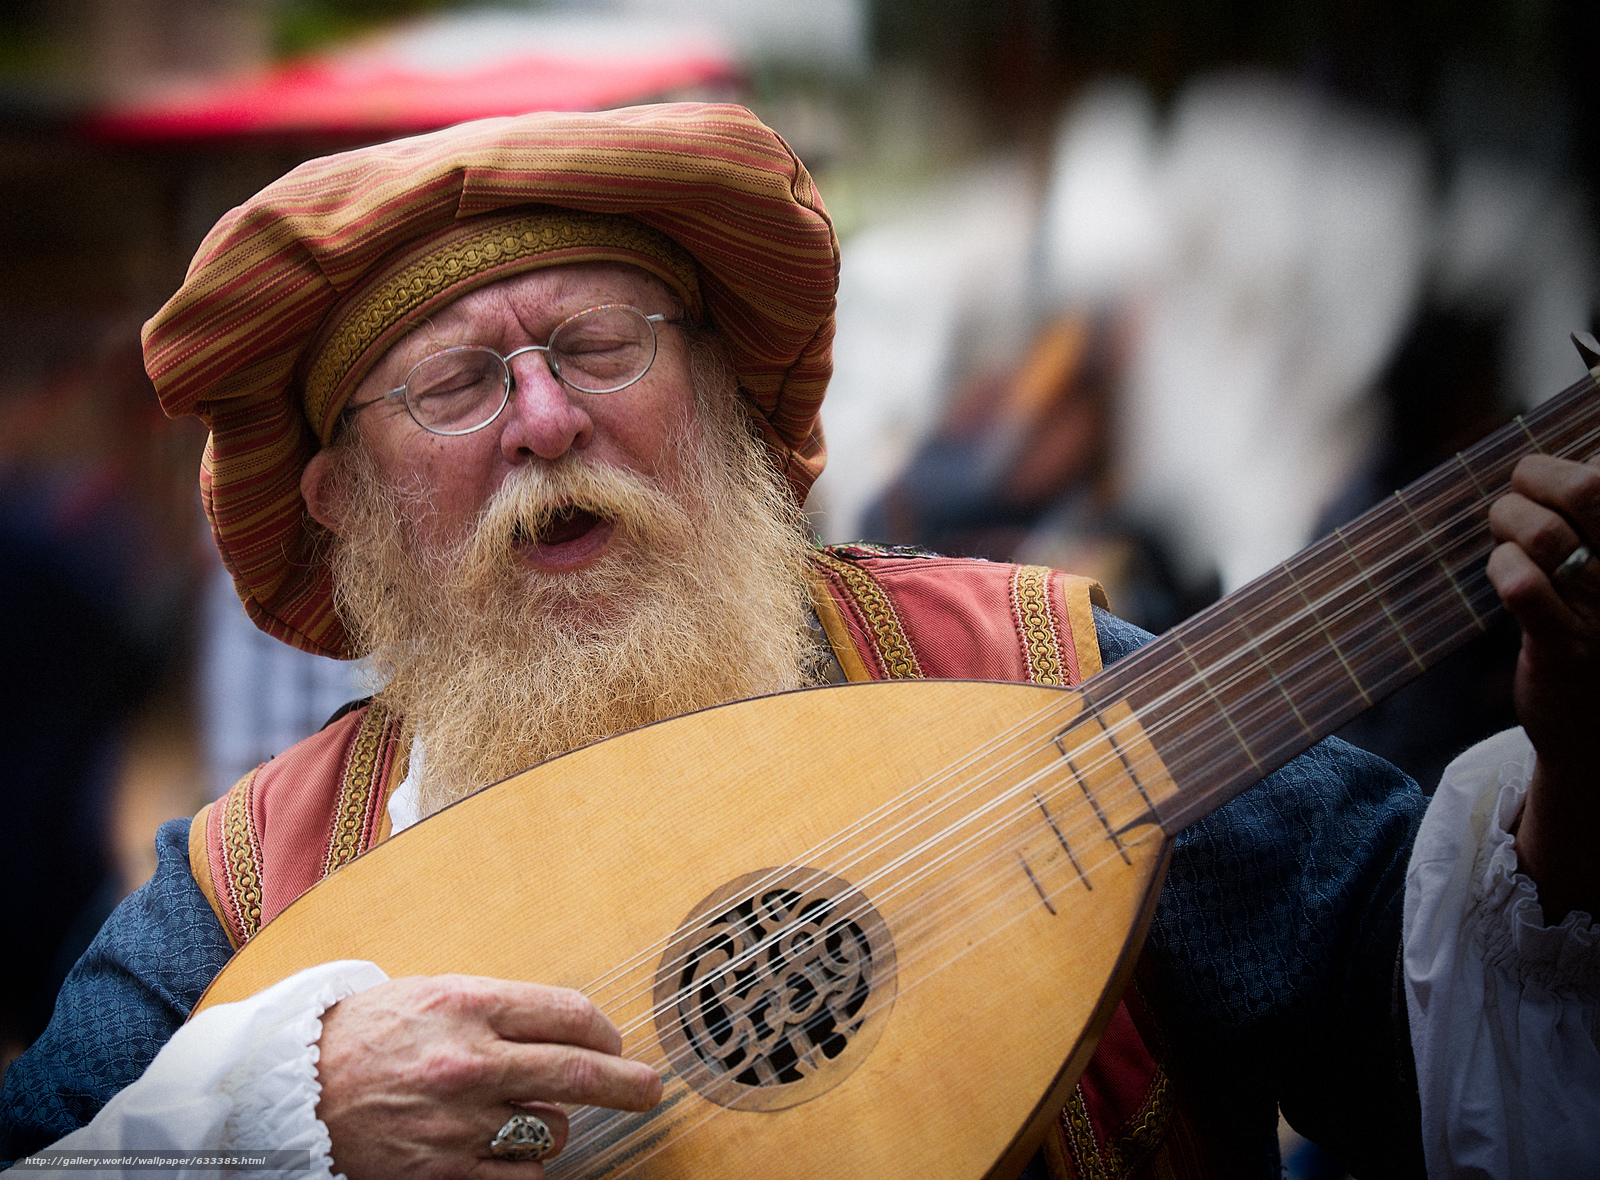 Download wallpaper lute,  musical instrument,  old man,  beard free desktop wallpaper in the resolution 4722x3482 — picture №633385